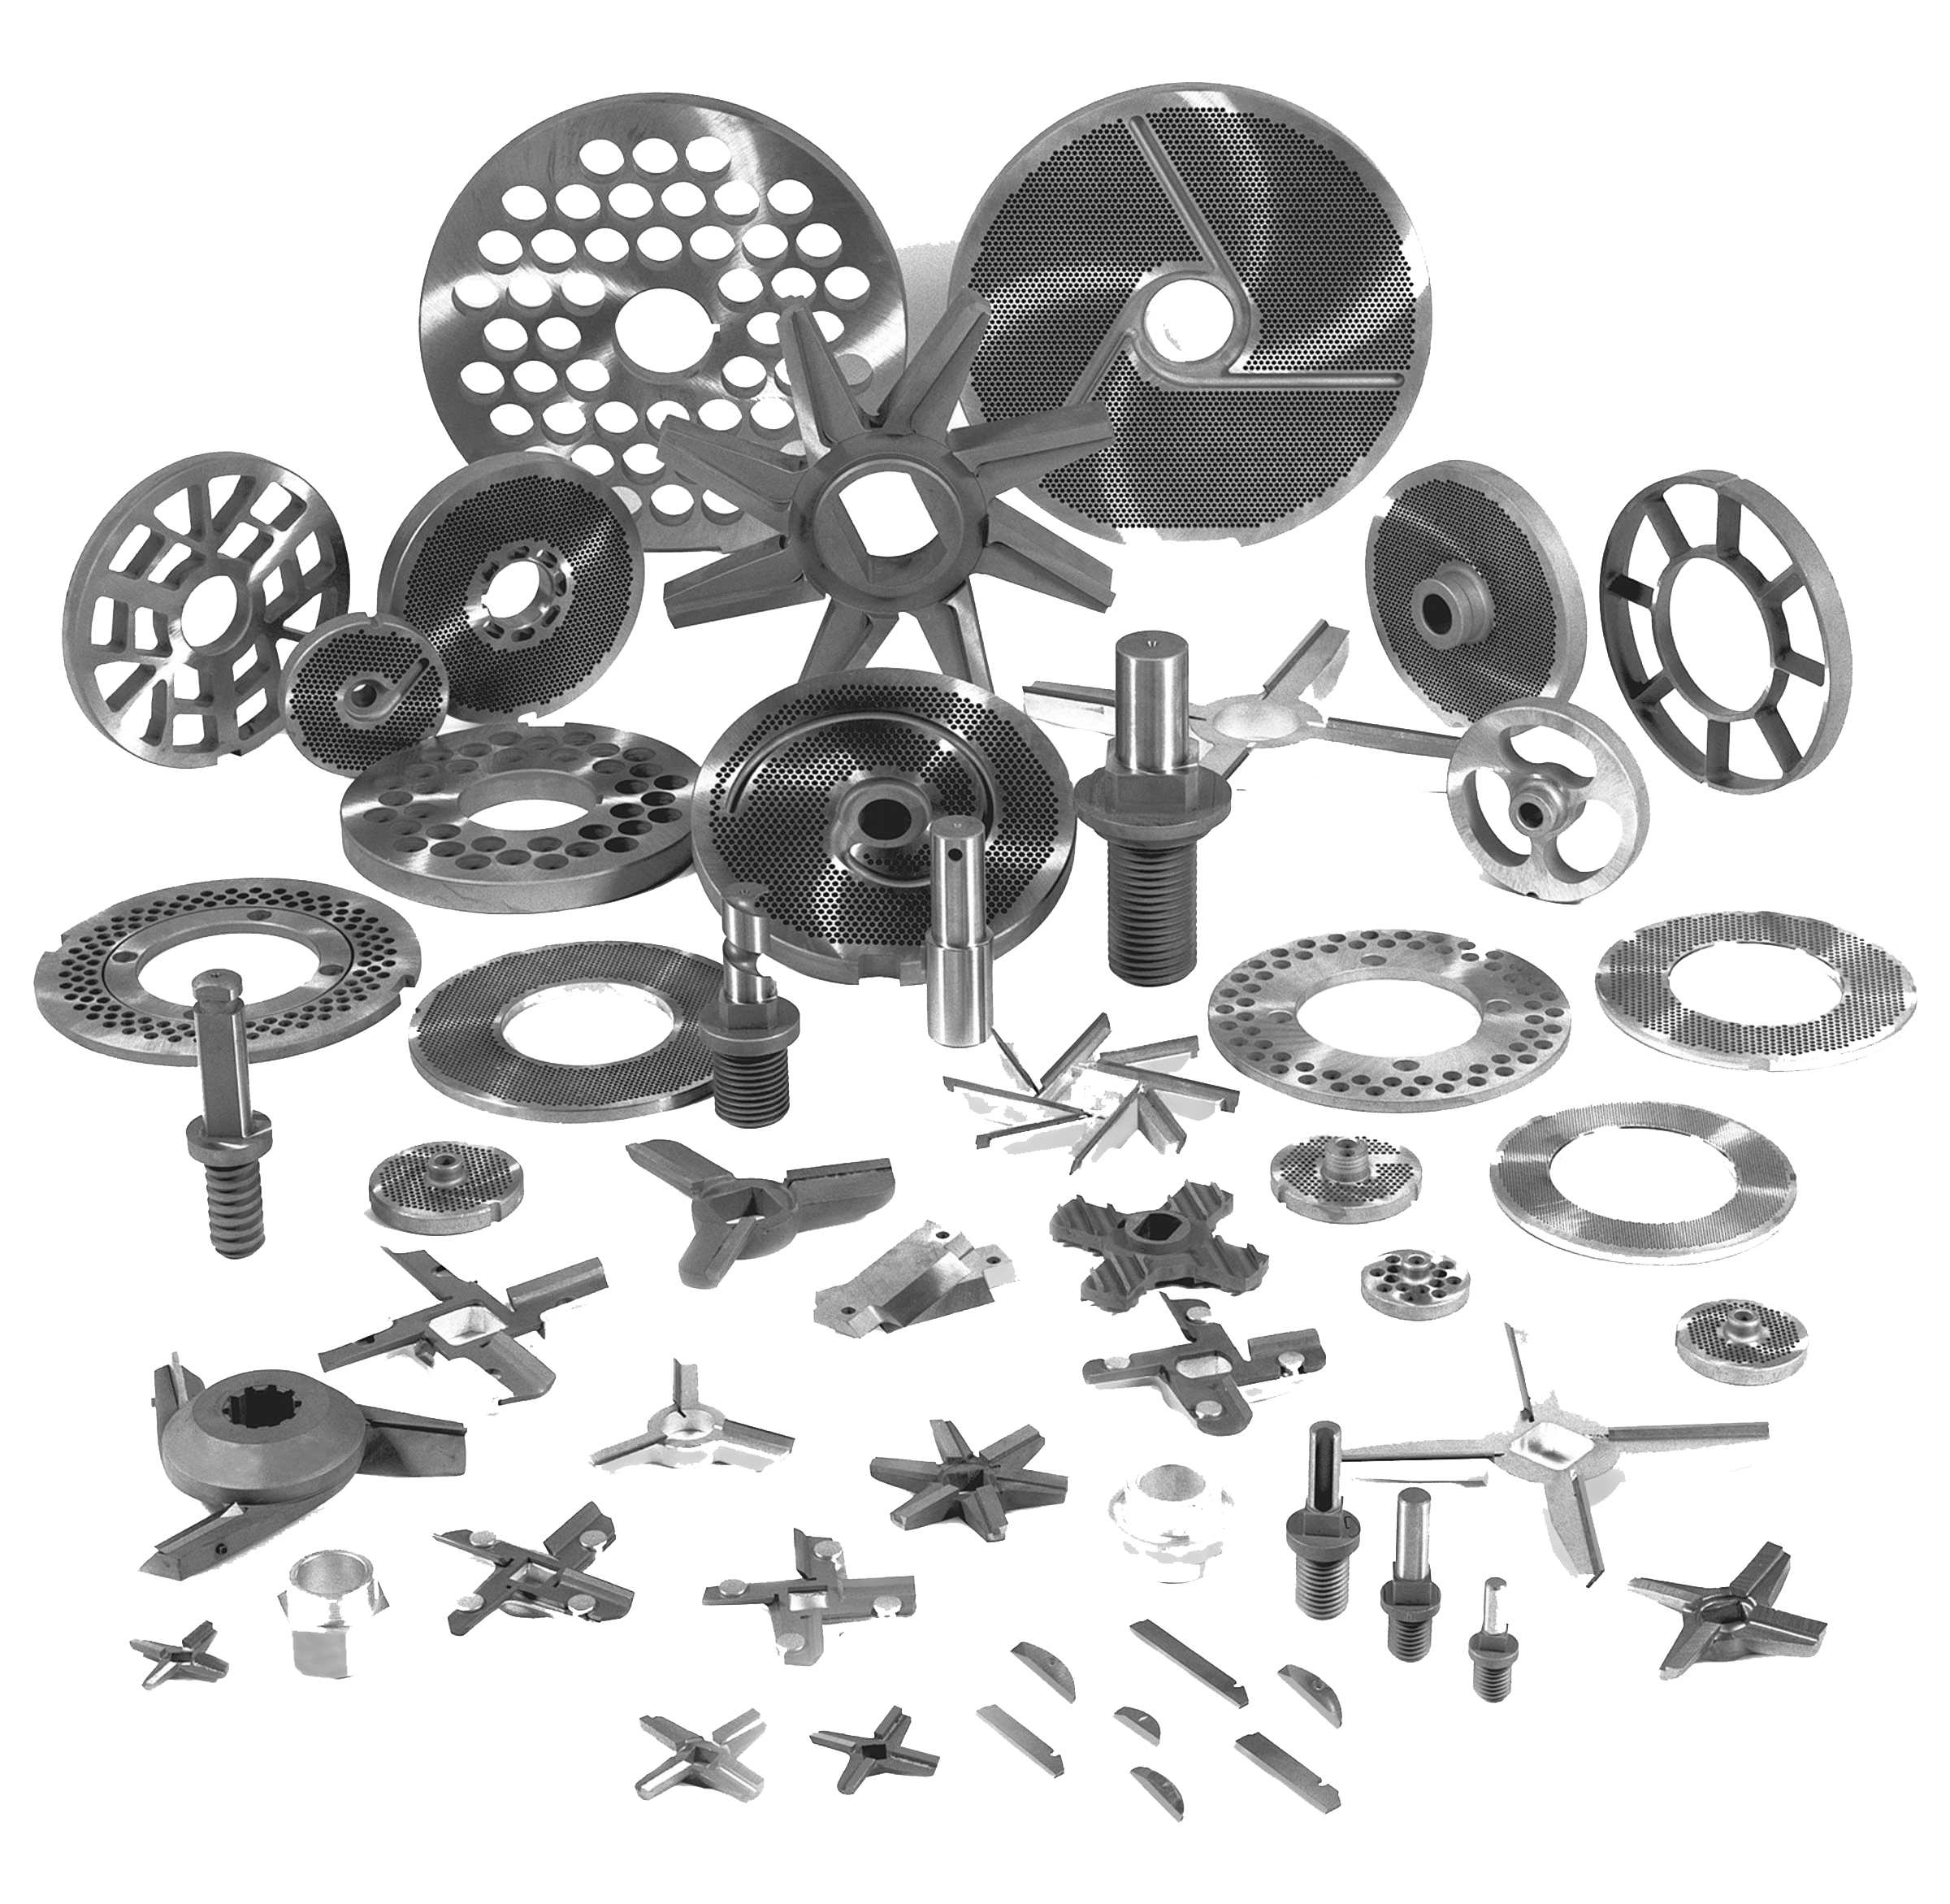 all the parts